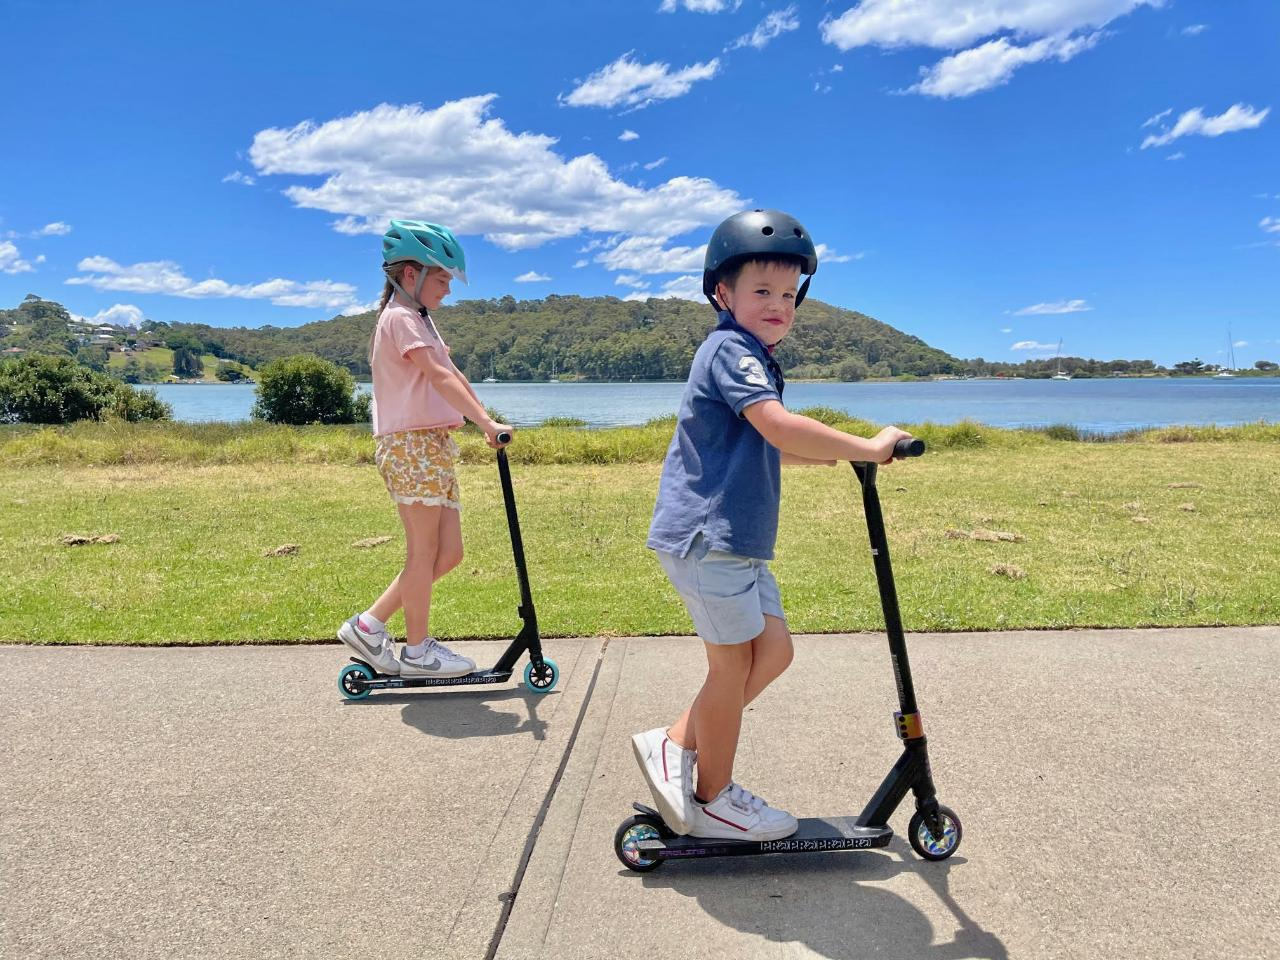 SCOOTER HIRE - CHILD